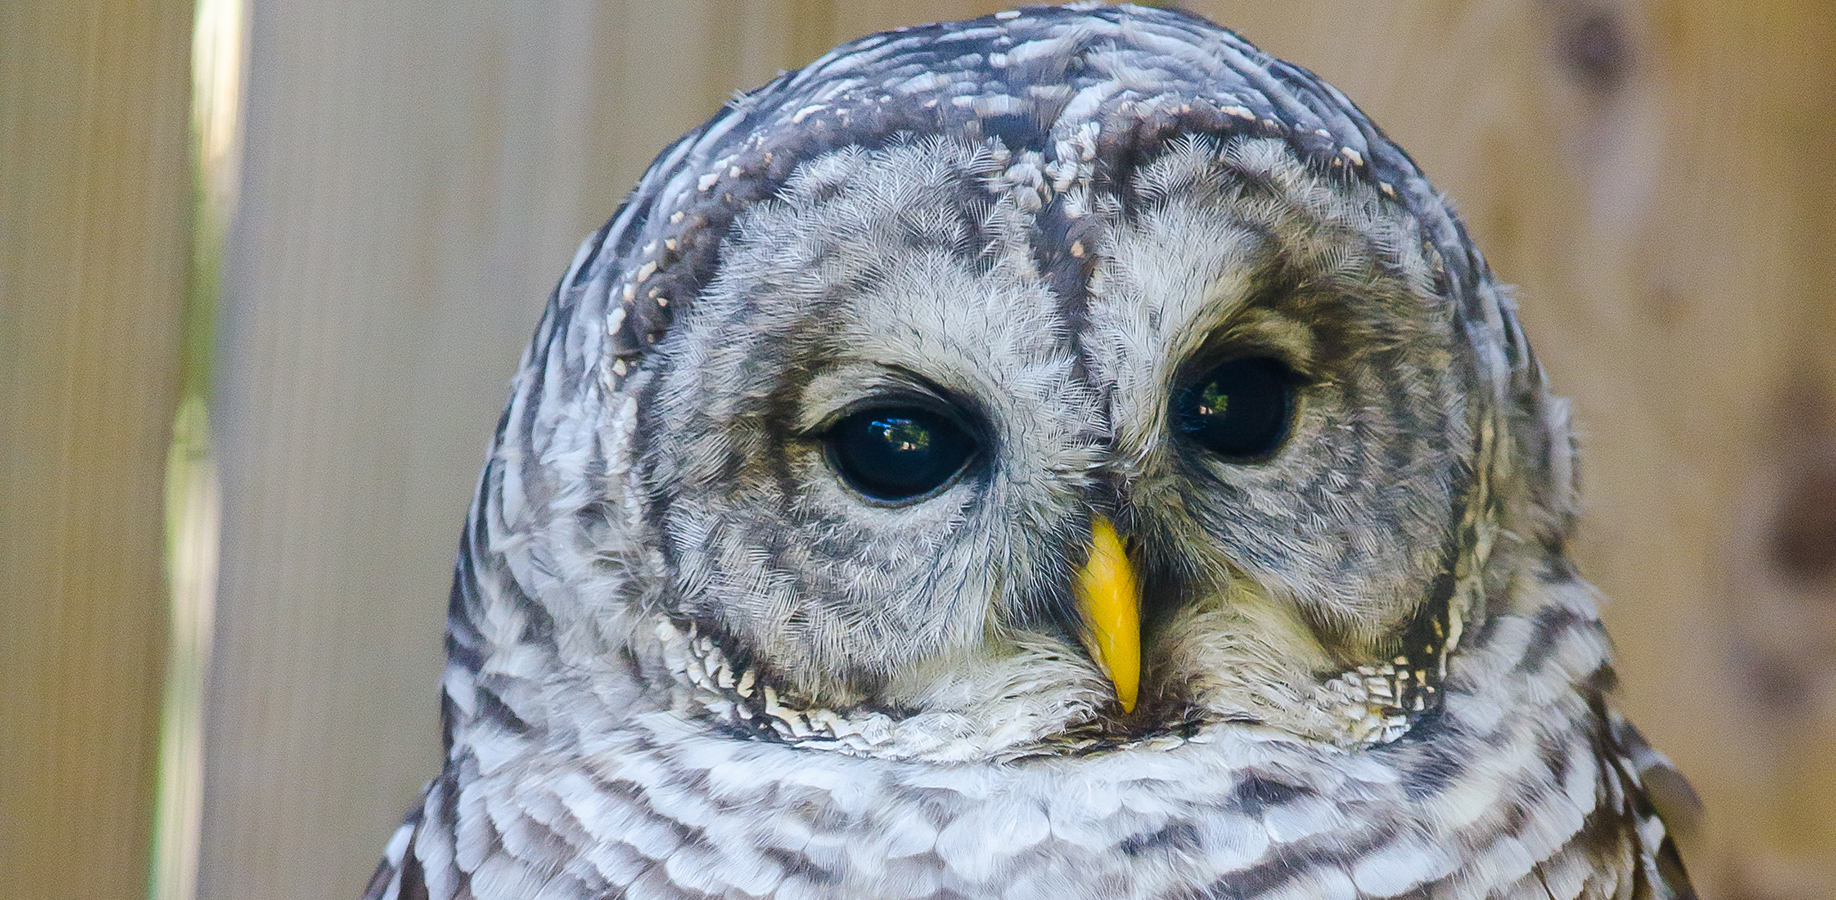 close-up of the Barred Owl